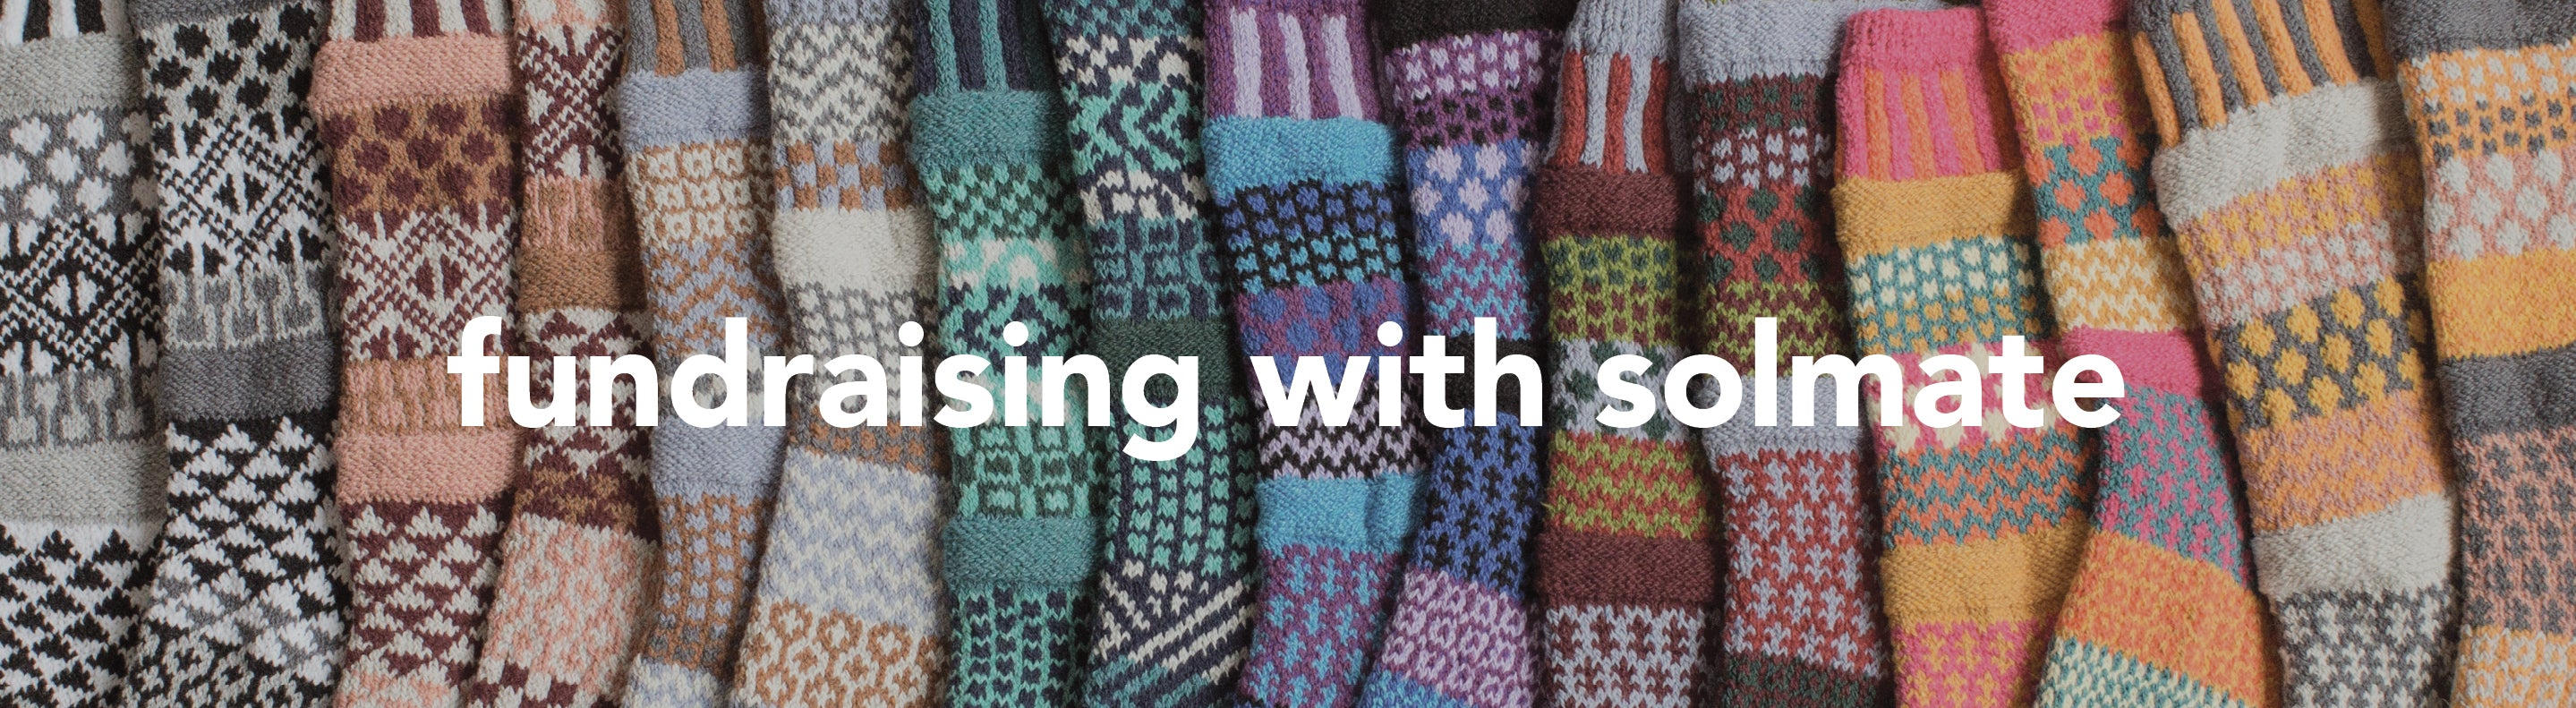 fundraising with solmate socks